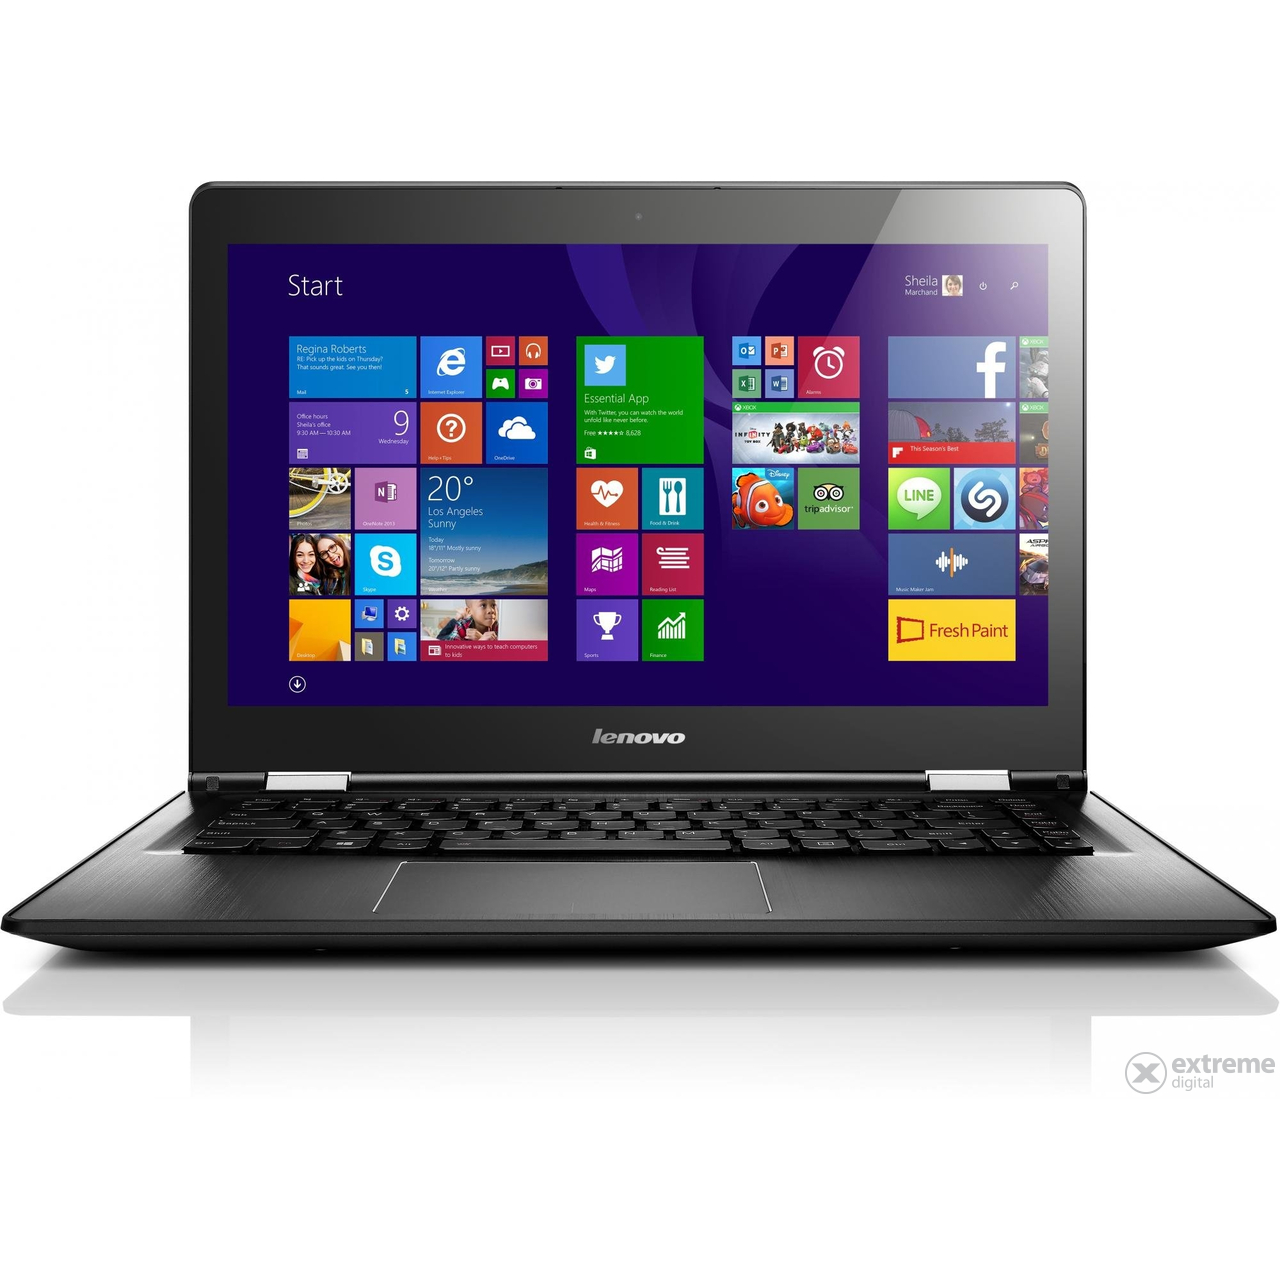 lenovo-ideapad-yoga-500-14ihw-2-az-1-ben-notebook-windows-8-1-fekete_8f201e36.jpg